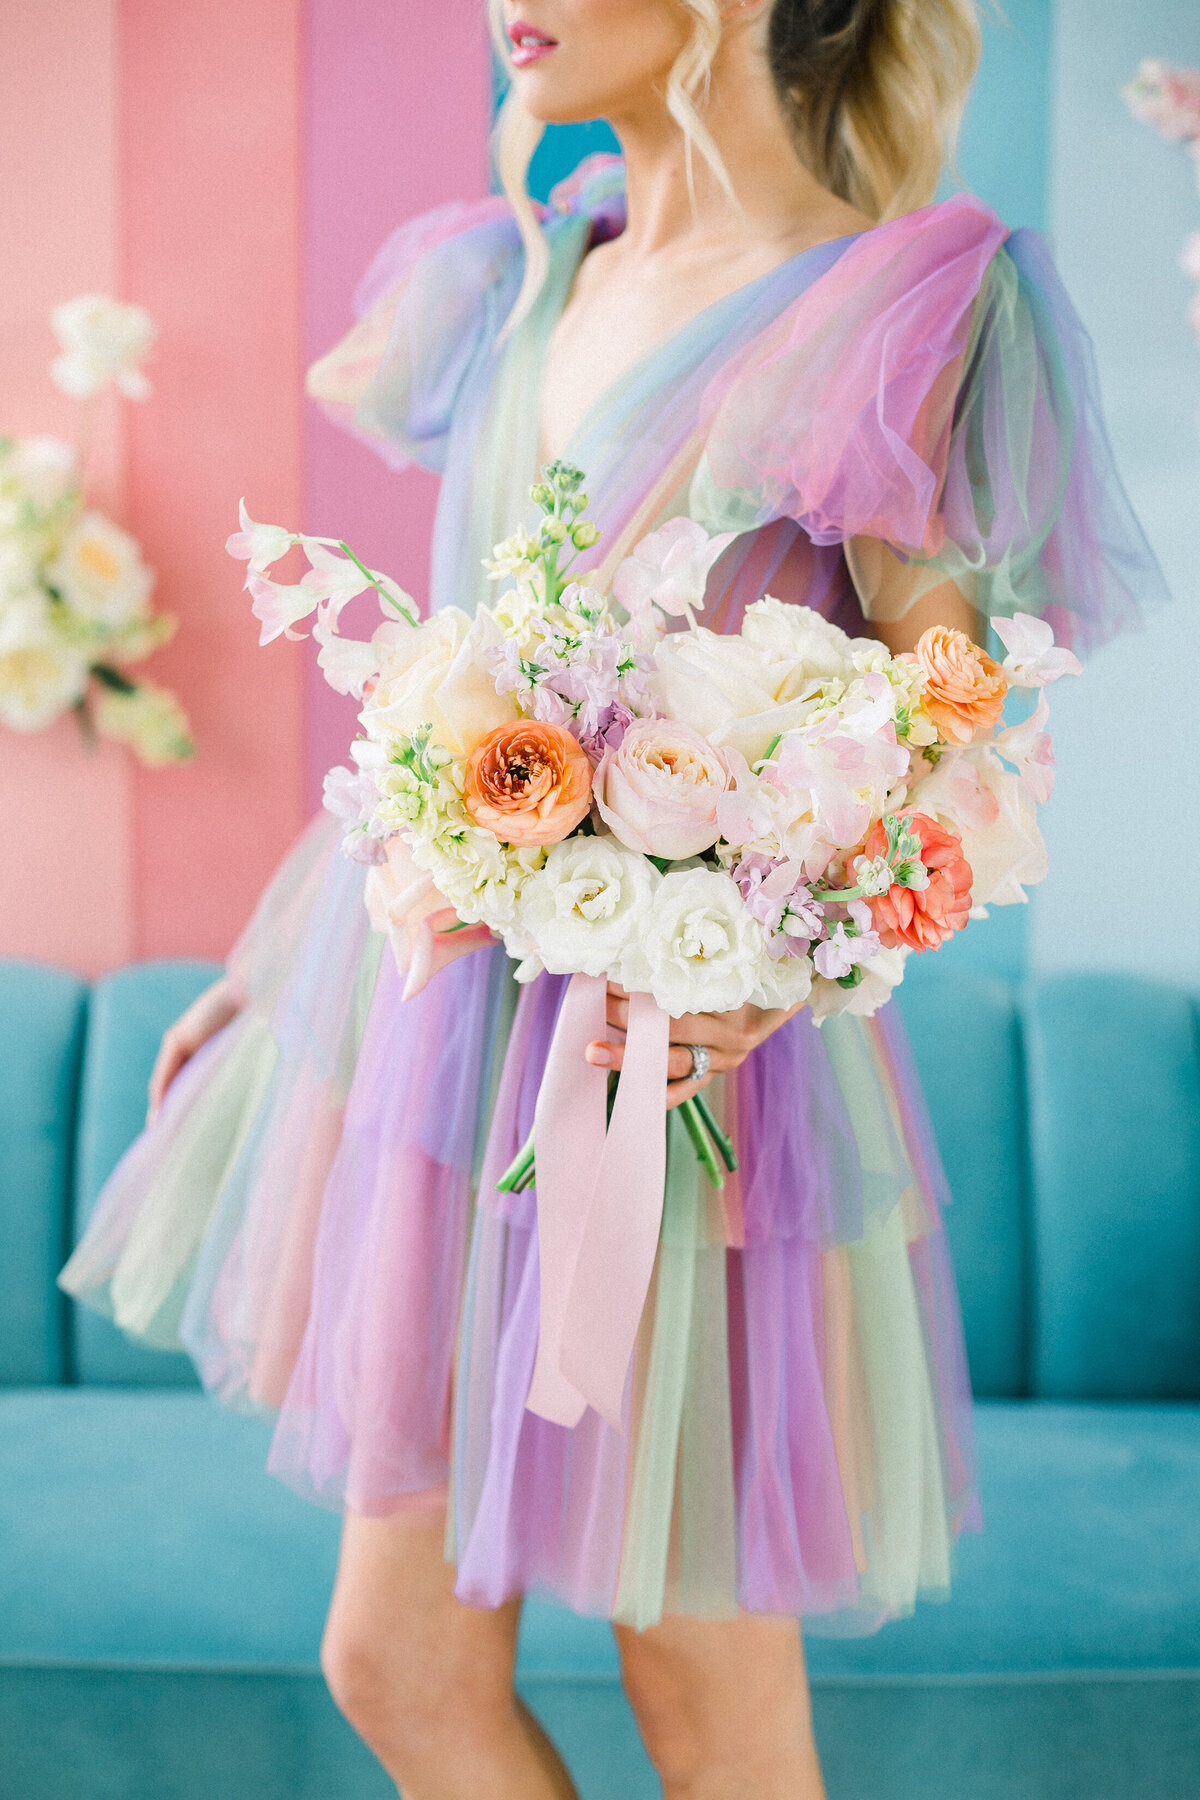 Michelle Norwood Events - Wedding Planner -  Pastel Rainbow Wedding Design - Featured on Wedding Chicks